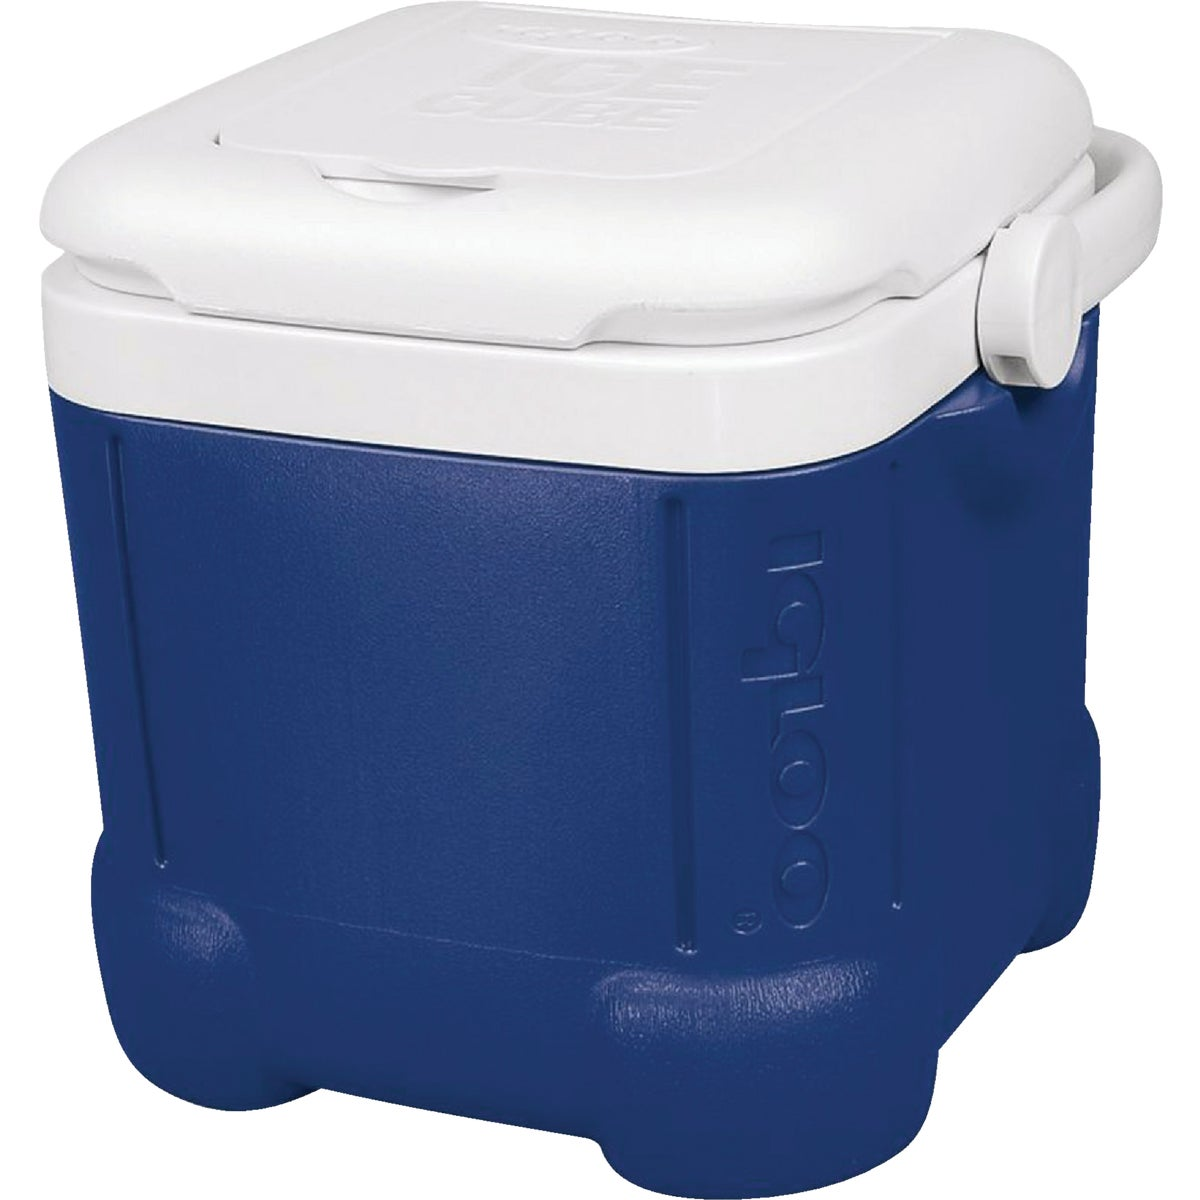 Igloo 12QT ICECUBE COOLER 43058